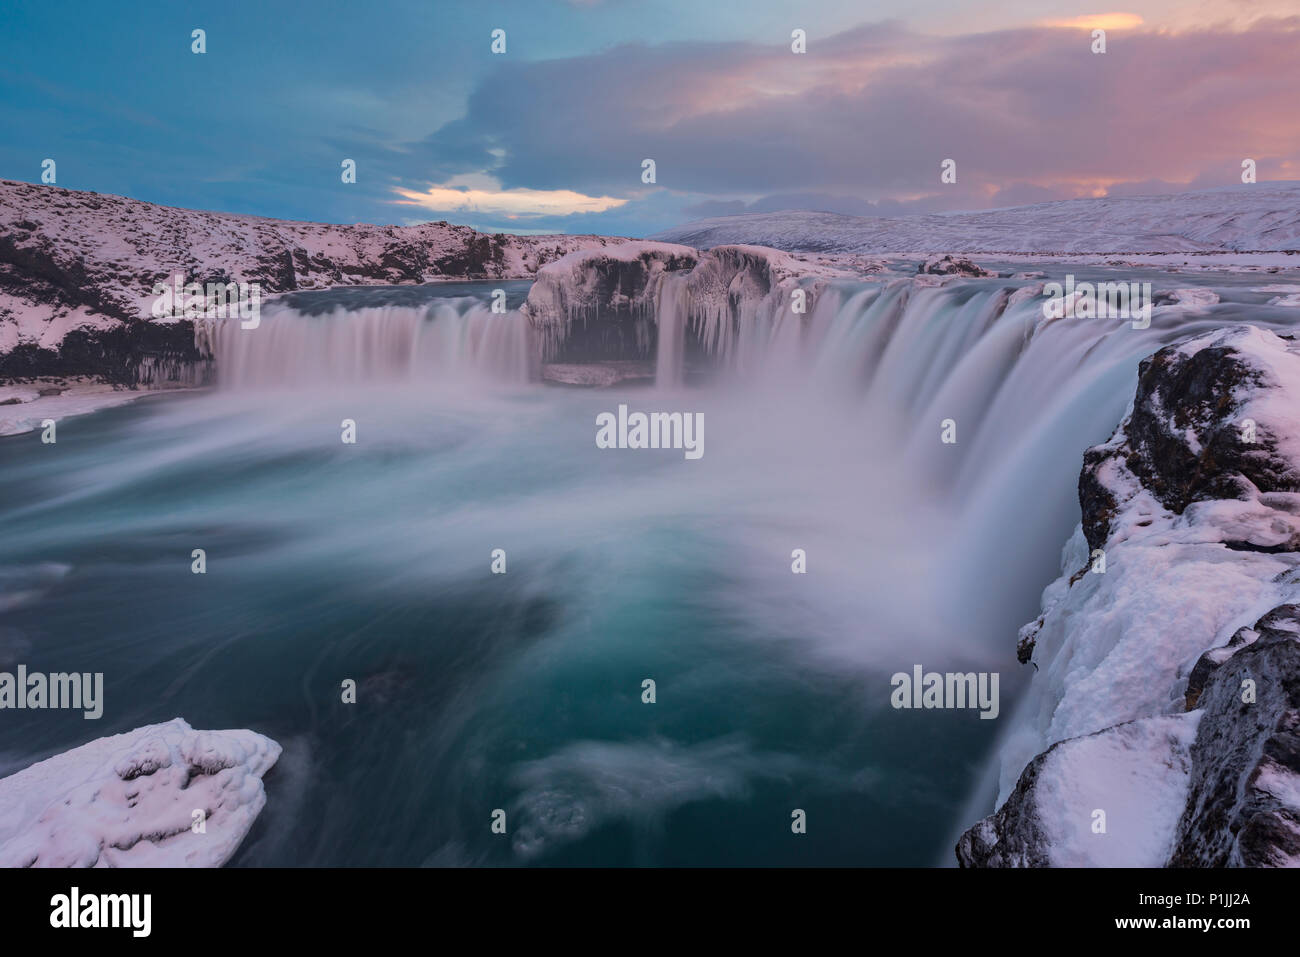 Evening light over Godafoss waterfall at ice and snow in winter, highlands, Iceland - Stock Image